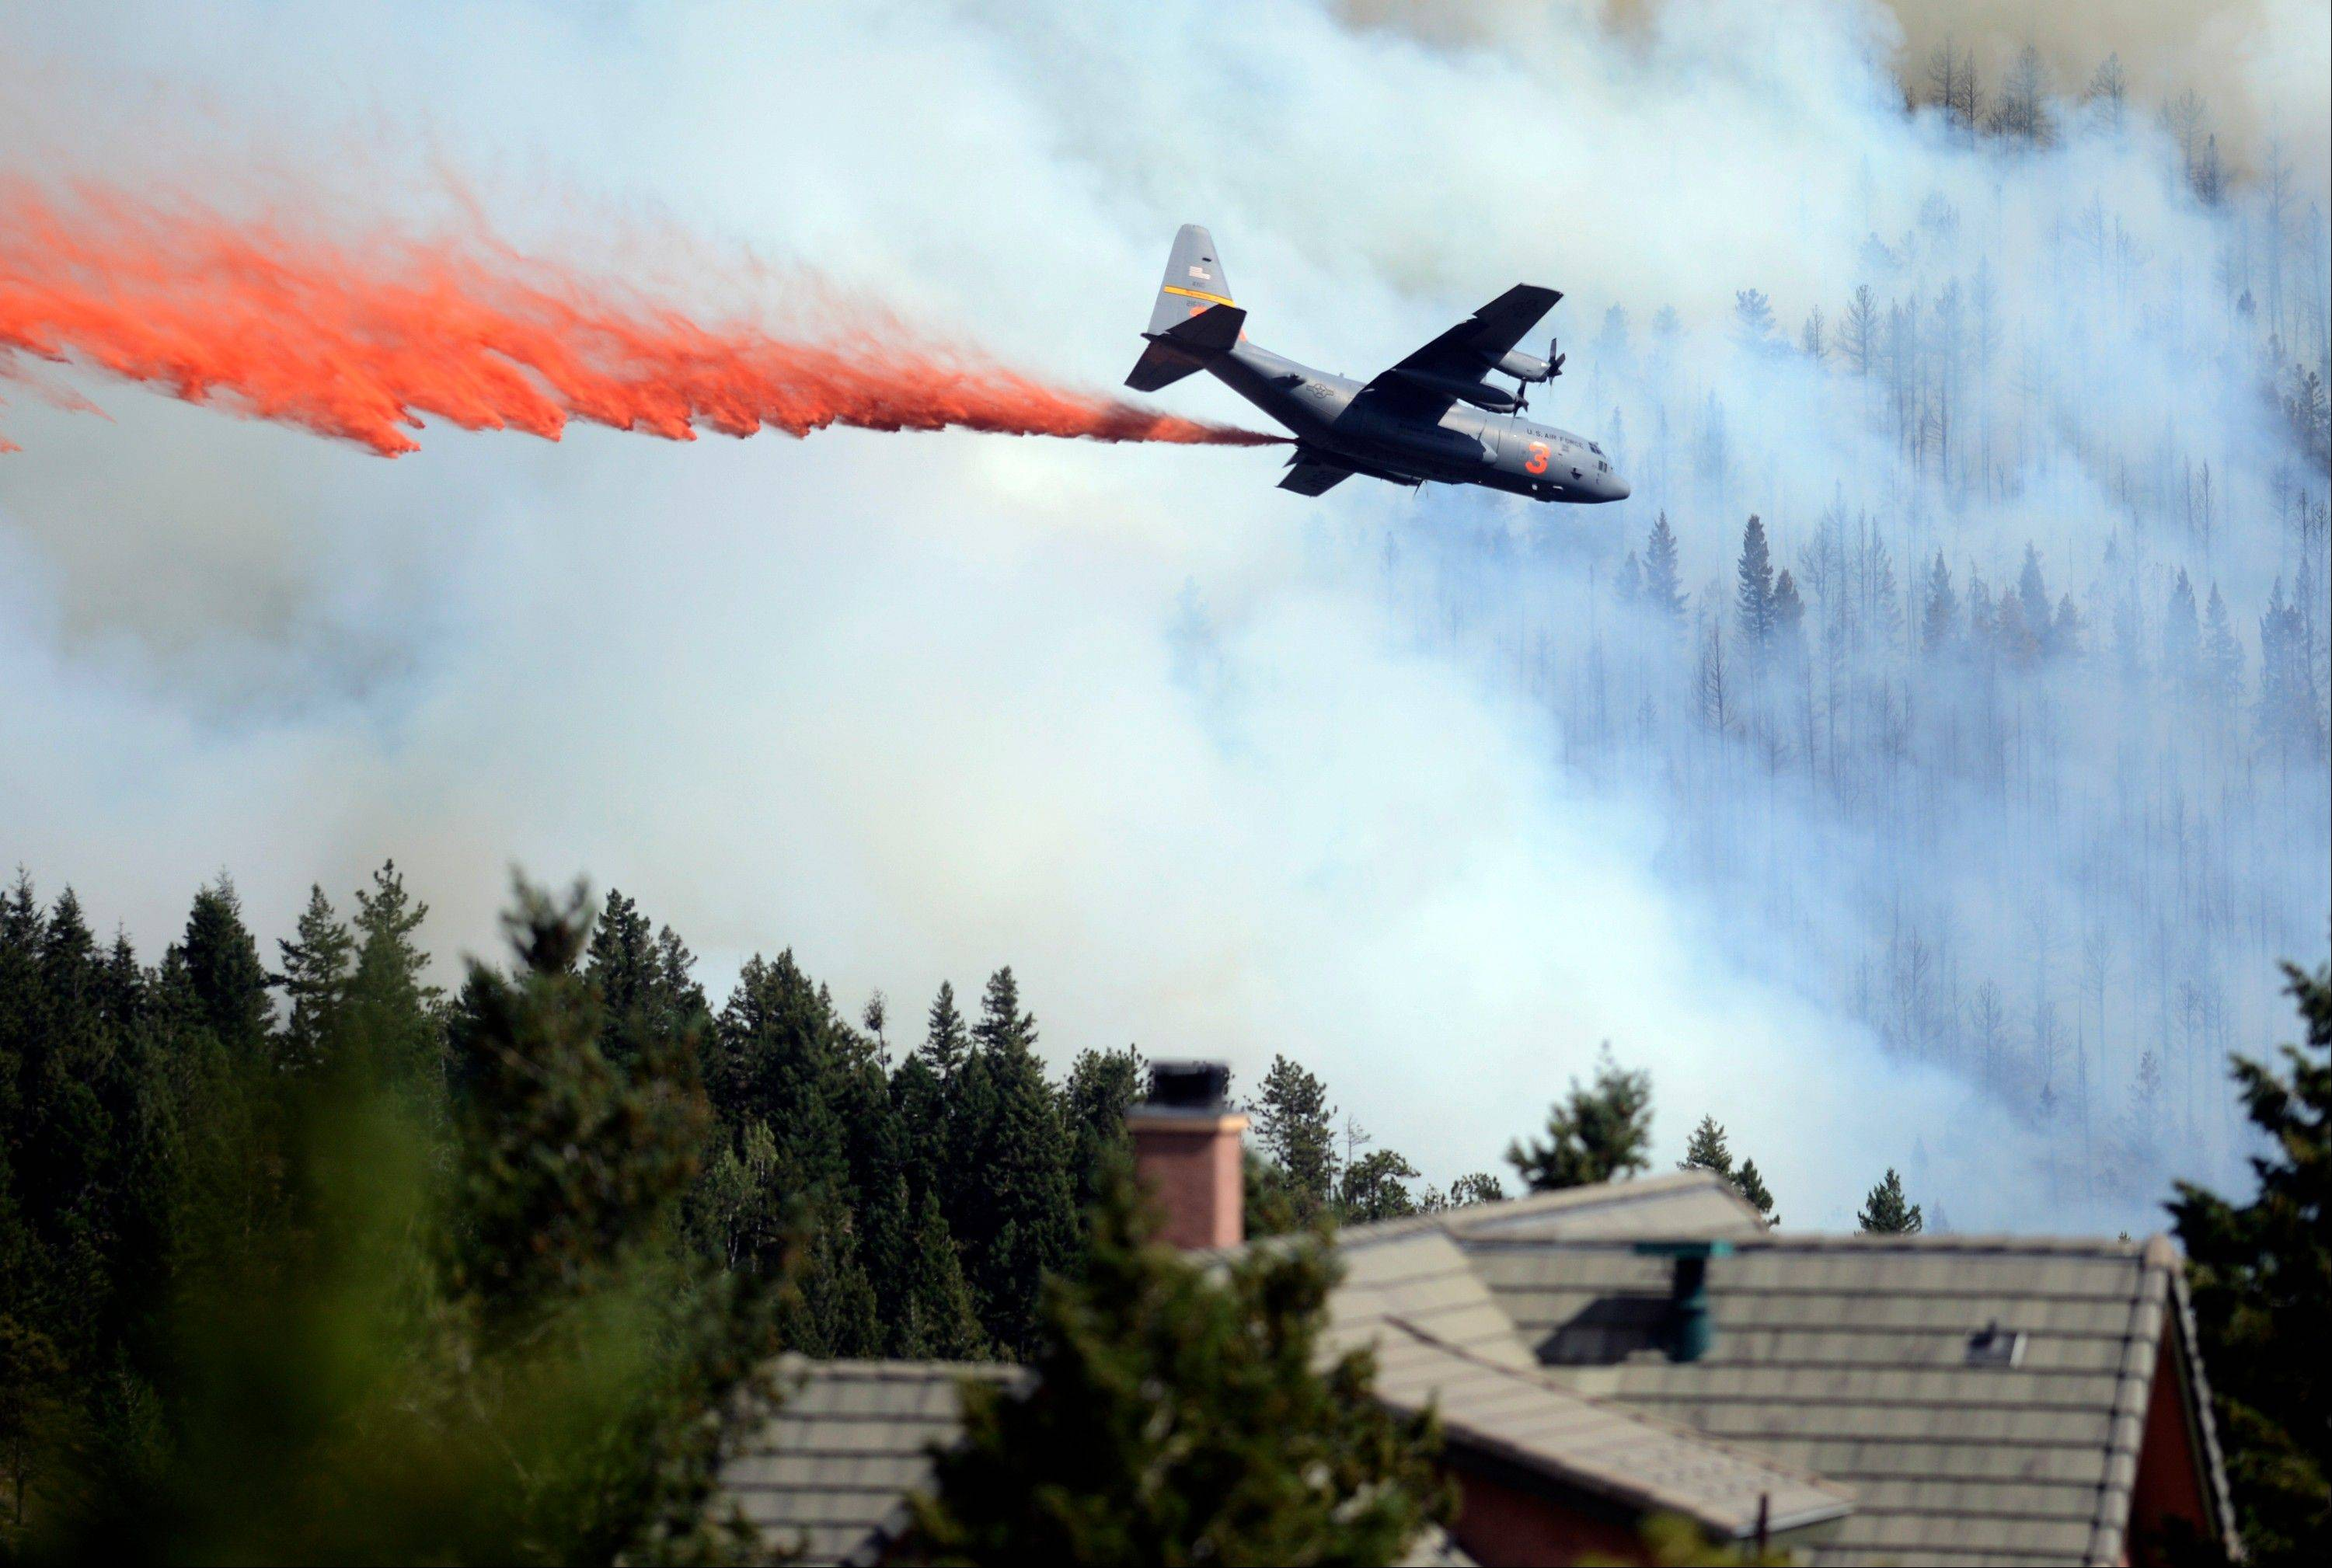 A heavy tanker drops fire retardant while fighting the Flagstaff wildfire on Tuesday, June 26, 2012 in Boulder, Colorado.